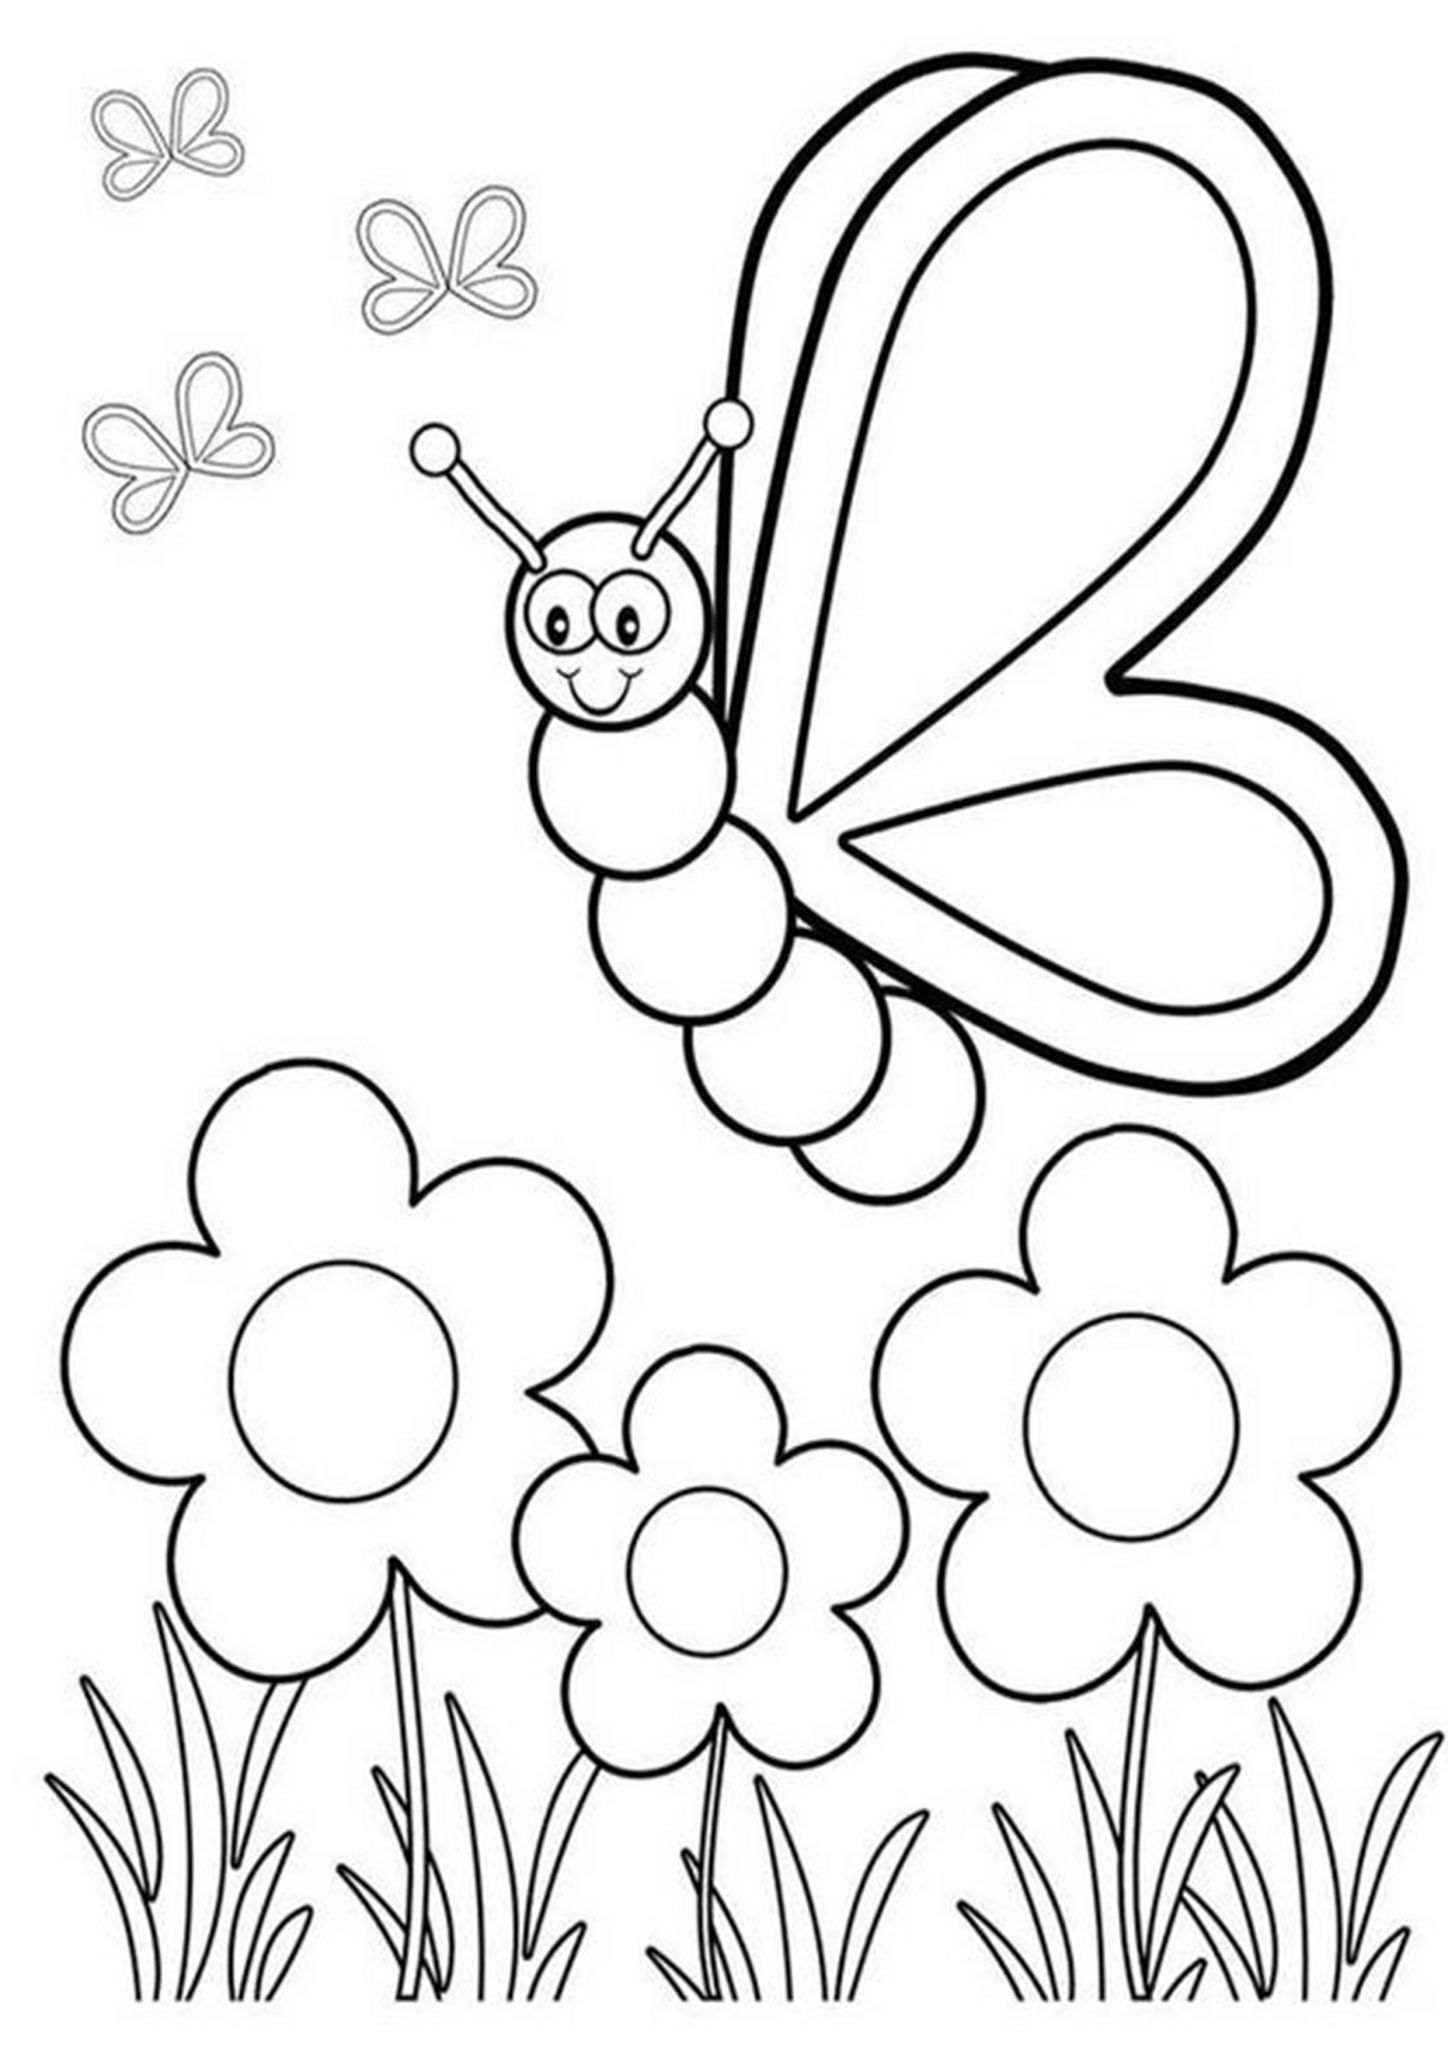 Free Easy To Print Flower Coloring Pages In 2020 Bug Coloring Pages Insect Coloring Pages Butterfly Coloring Page